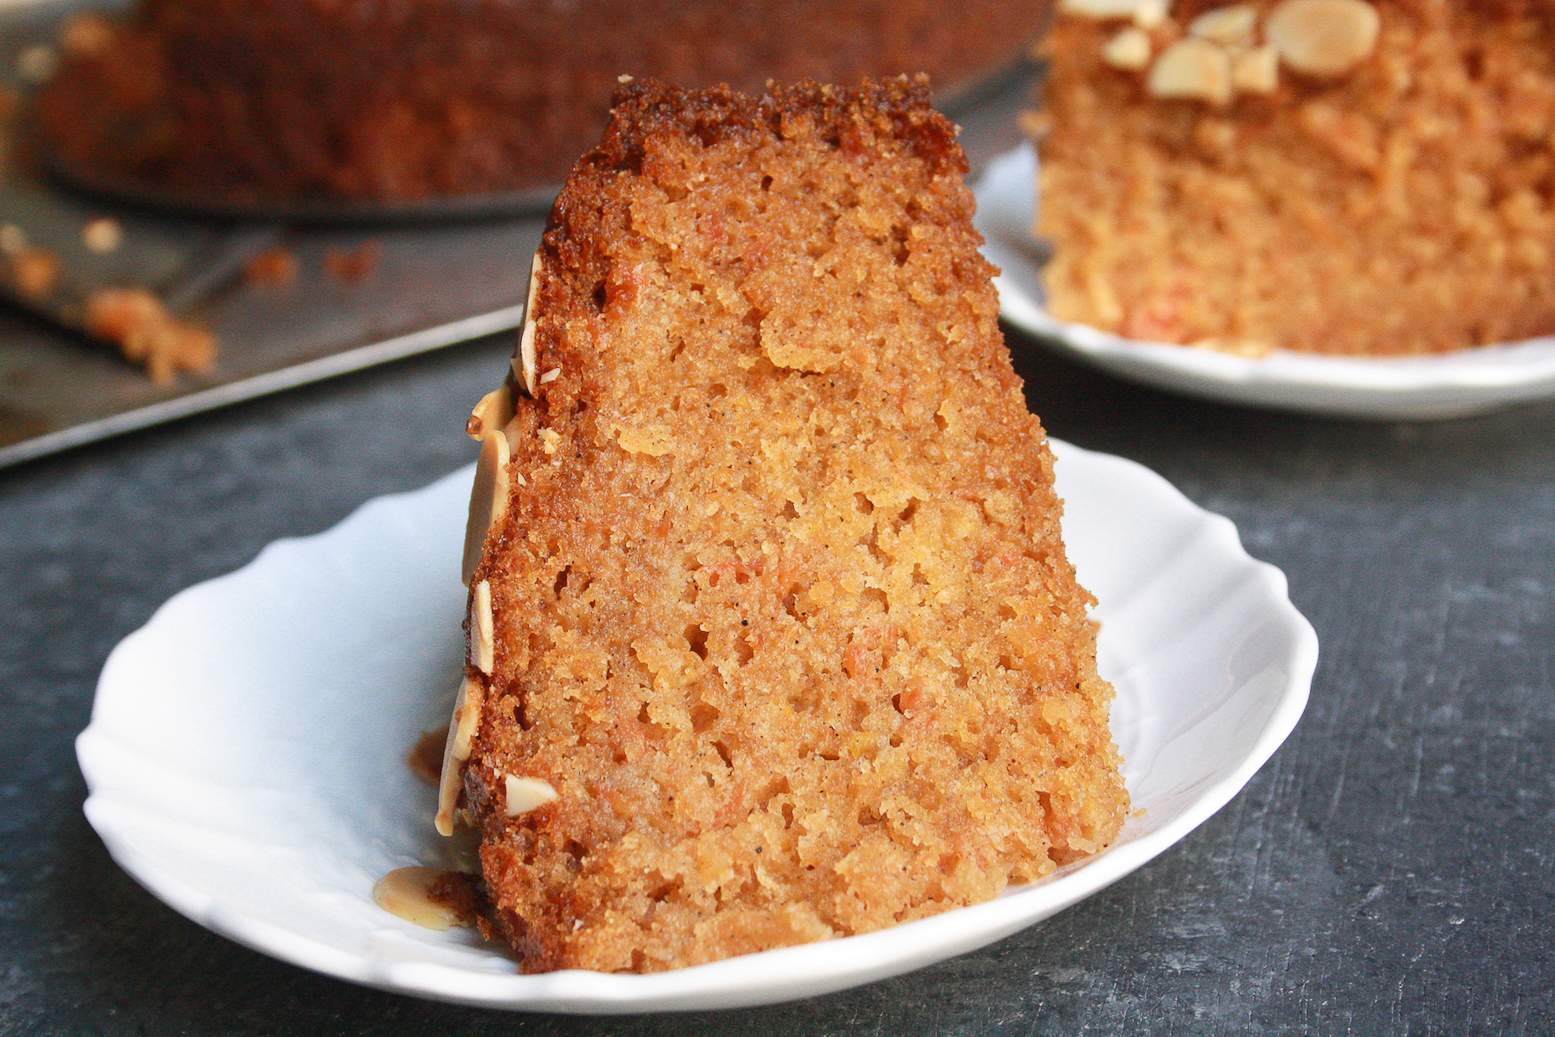 spicedcarrotcake3A super moist carrot cake filled with all sorts of warming winter spices for a classic addition to your festive table!